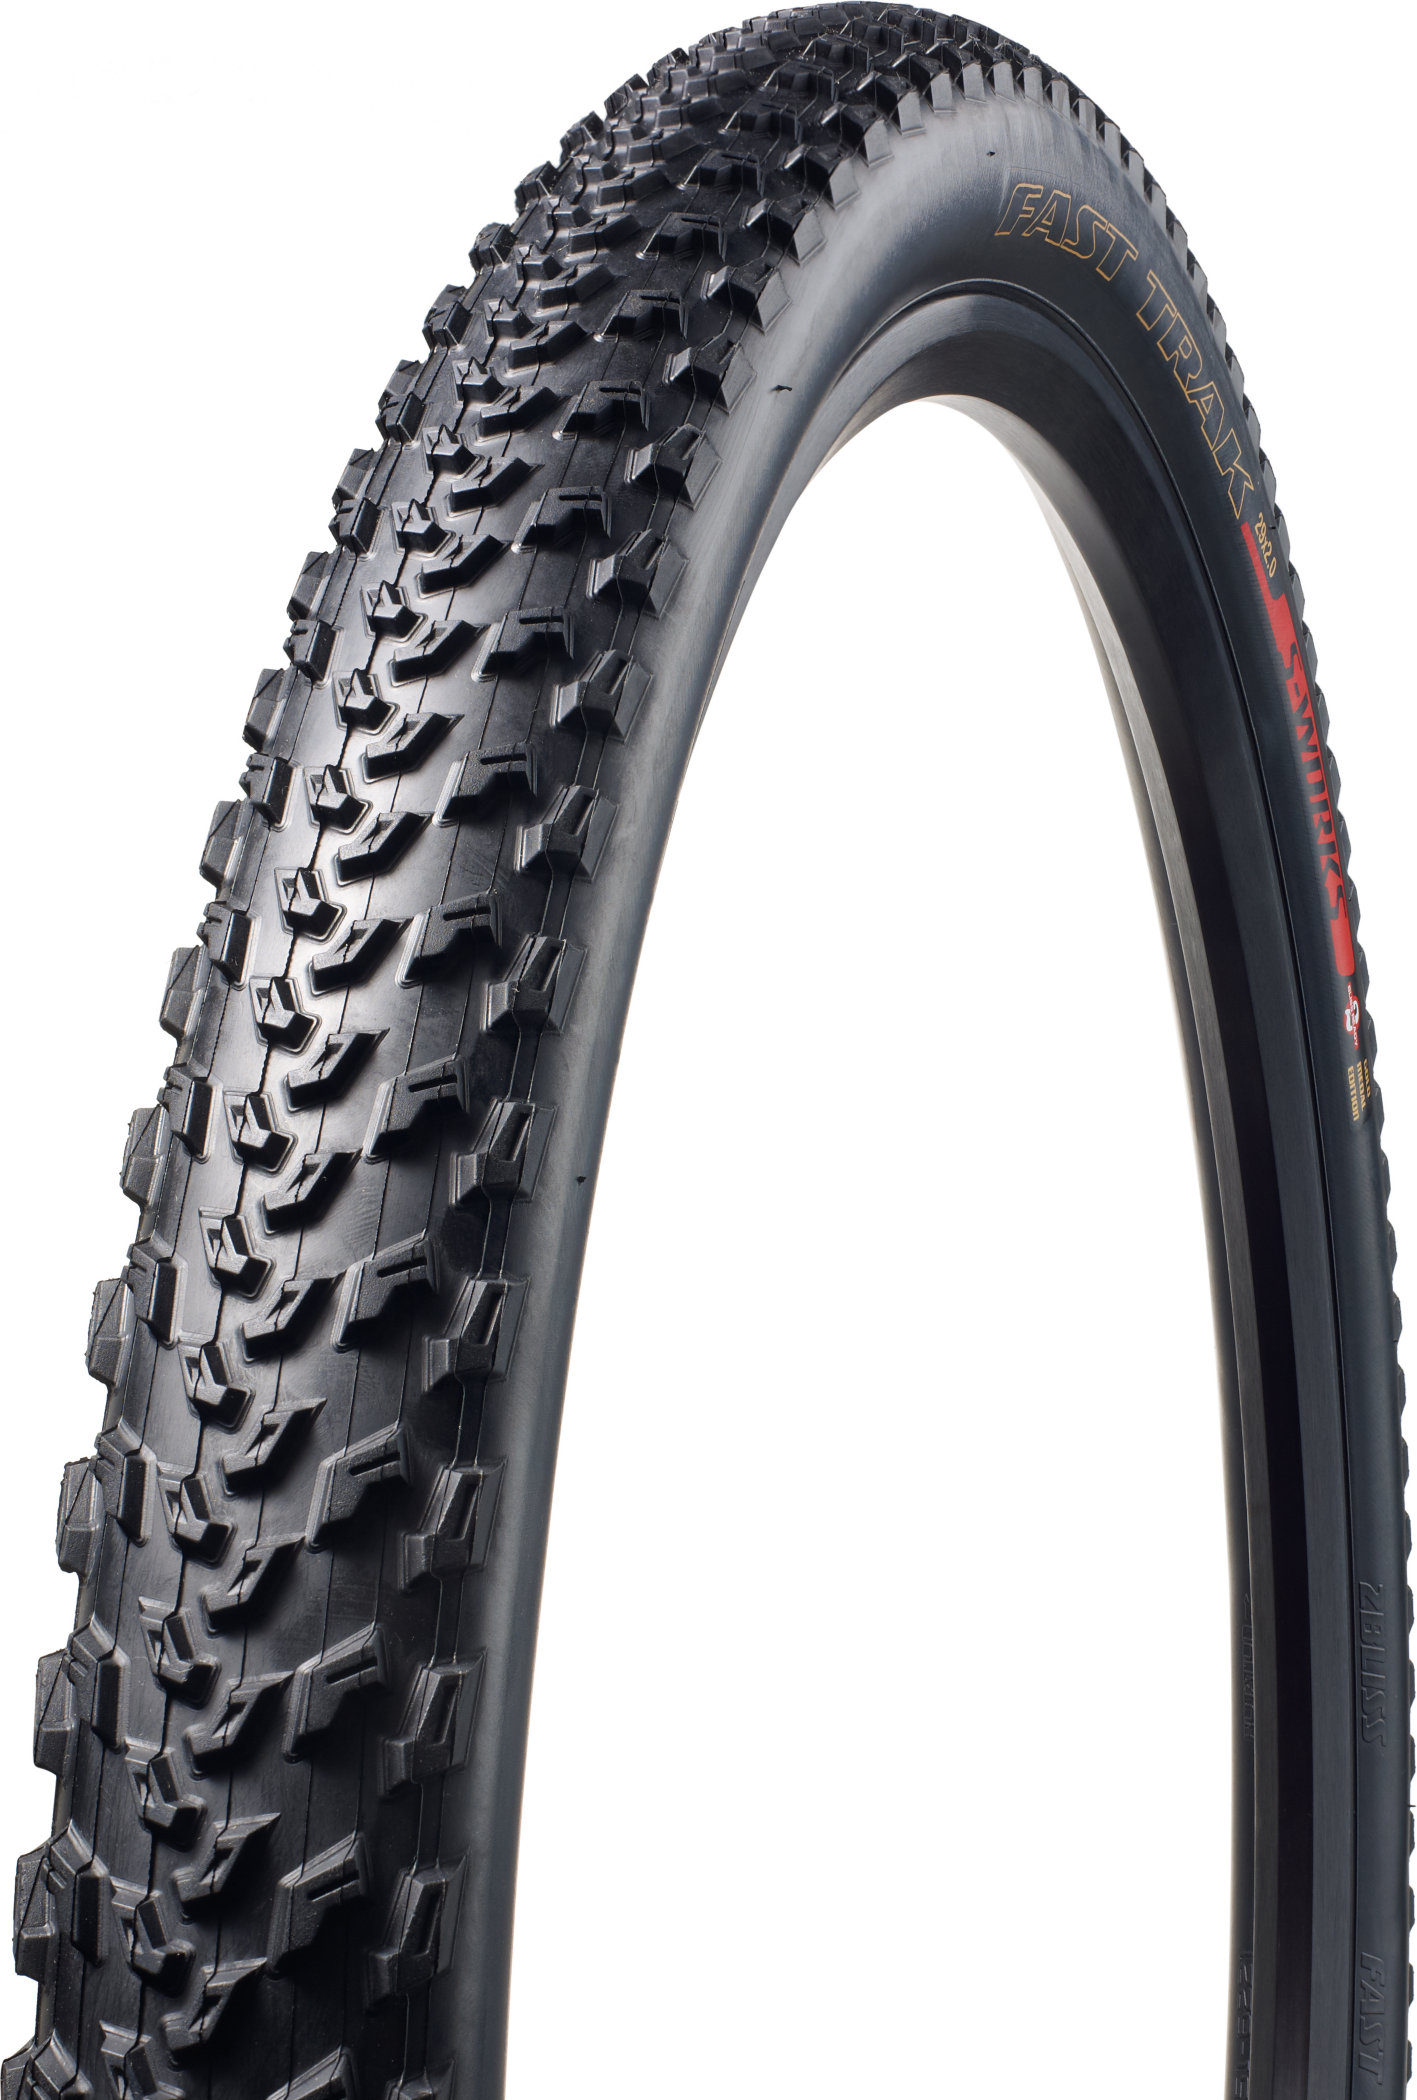 SPECIALIZED FAST TRAK CONTROL 2BR TIRE 650BX2.2 - SPECIALIZED FAST TRAK CONTROL 2BR TIRE 650BX2.2